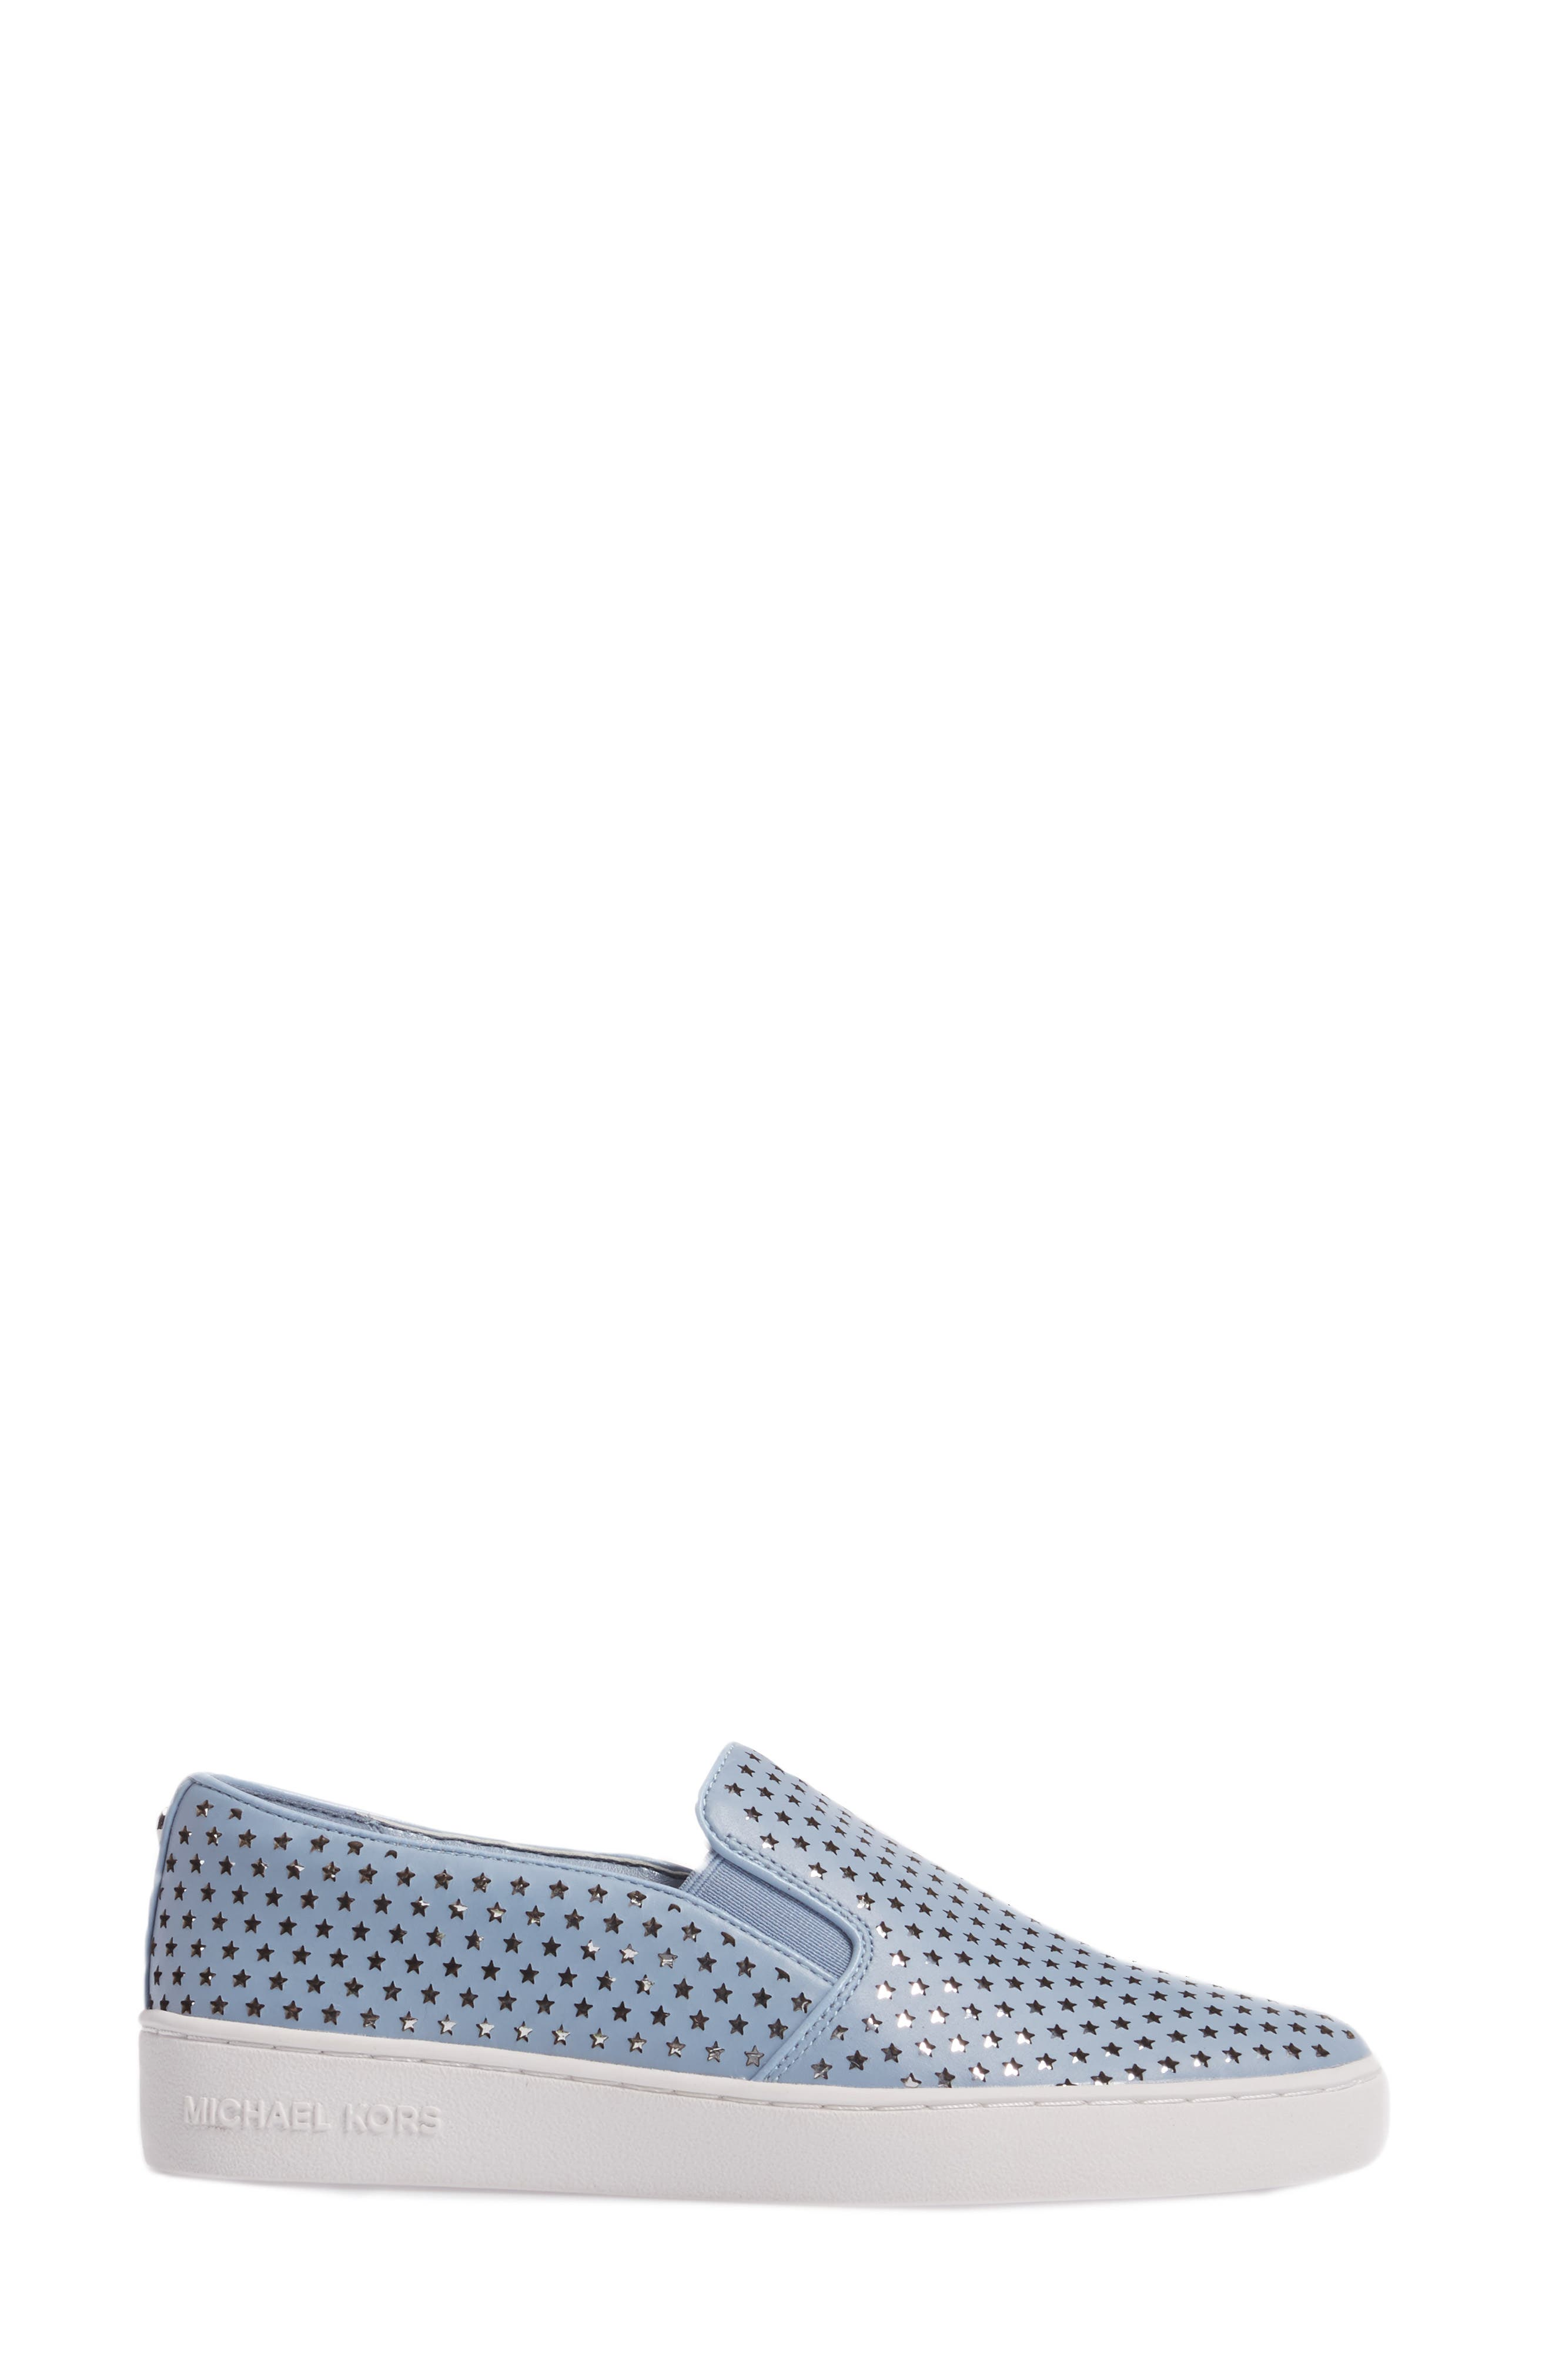 Keaton Slip-On Sneaker,                             Alternate thumbnail 3, color,                             Pale Blue Perforated Star